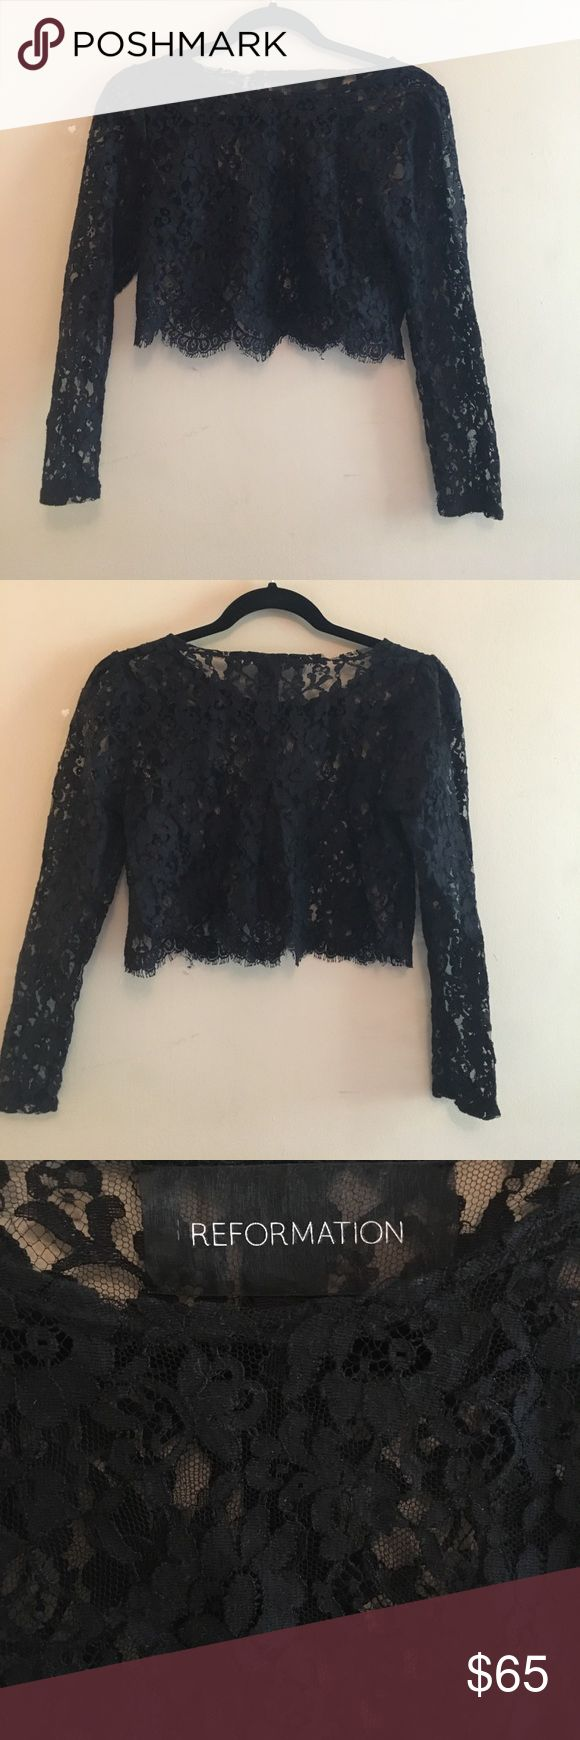 Reformation lace crop top Classic black lace reformation top from before the brand was so well-known. No liner, scalloped detail along hem, seam up back. In great condition, only worn a couple times.  Lace slightly undone in some places along hem and back of neckline due to ref's use of recycled material, not wear and tear. Condition looks as new when wearing! Reformation Tops Crop Tops